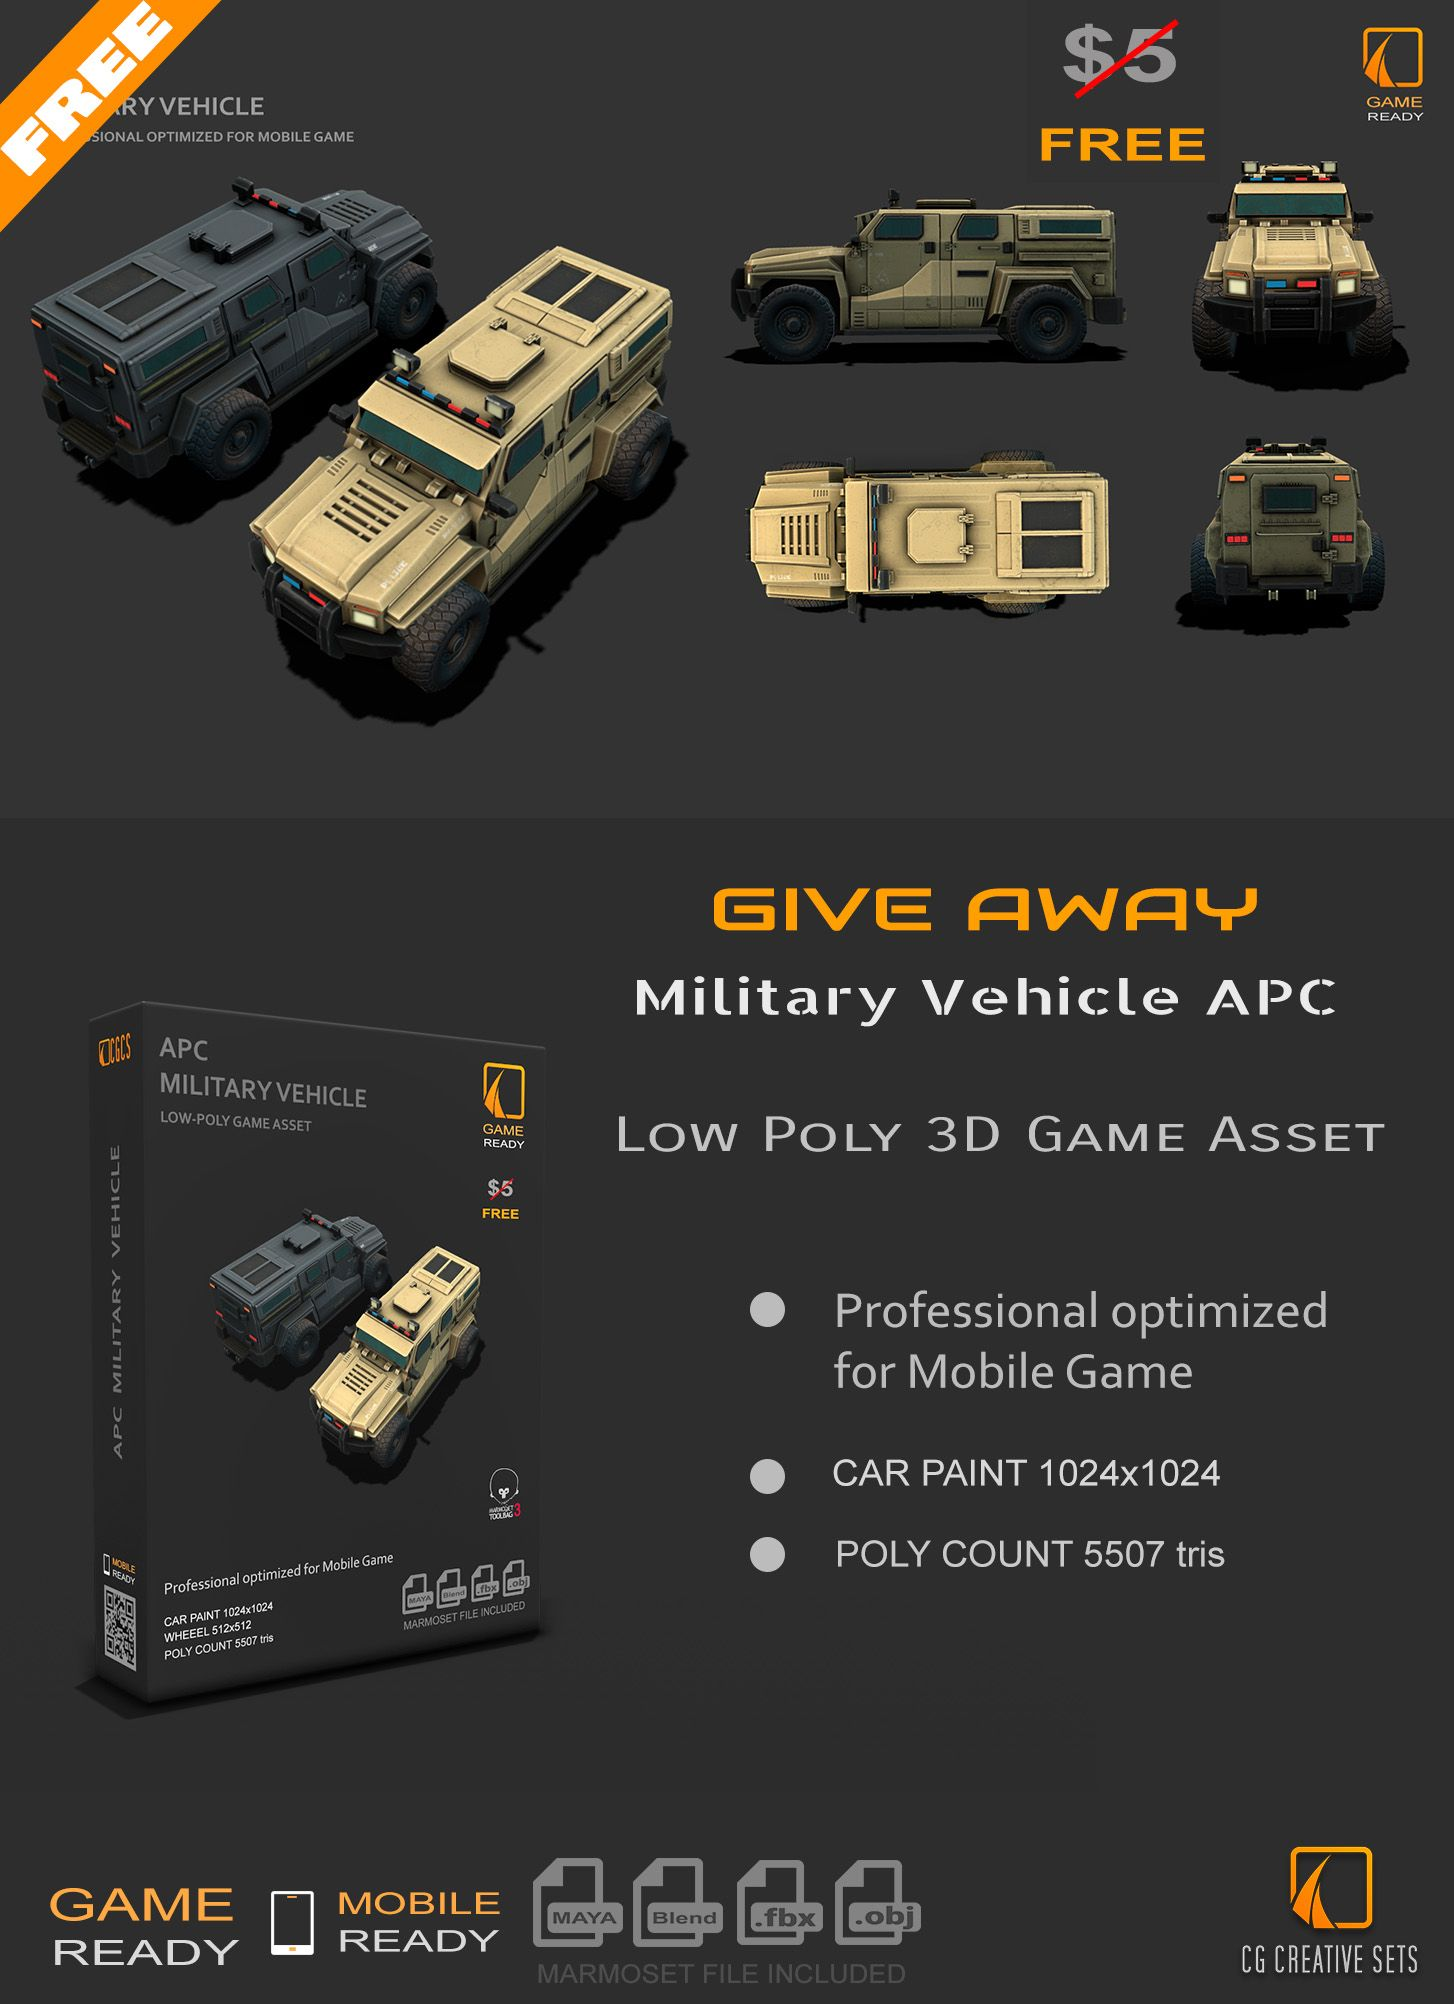 Free 3d Military Vehicle Apc Game Asset In 2020 Game Assets Low